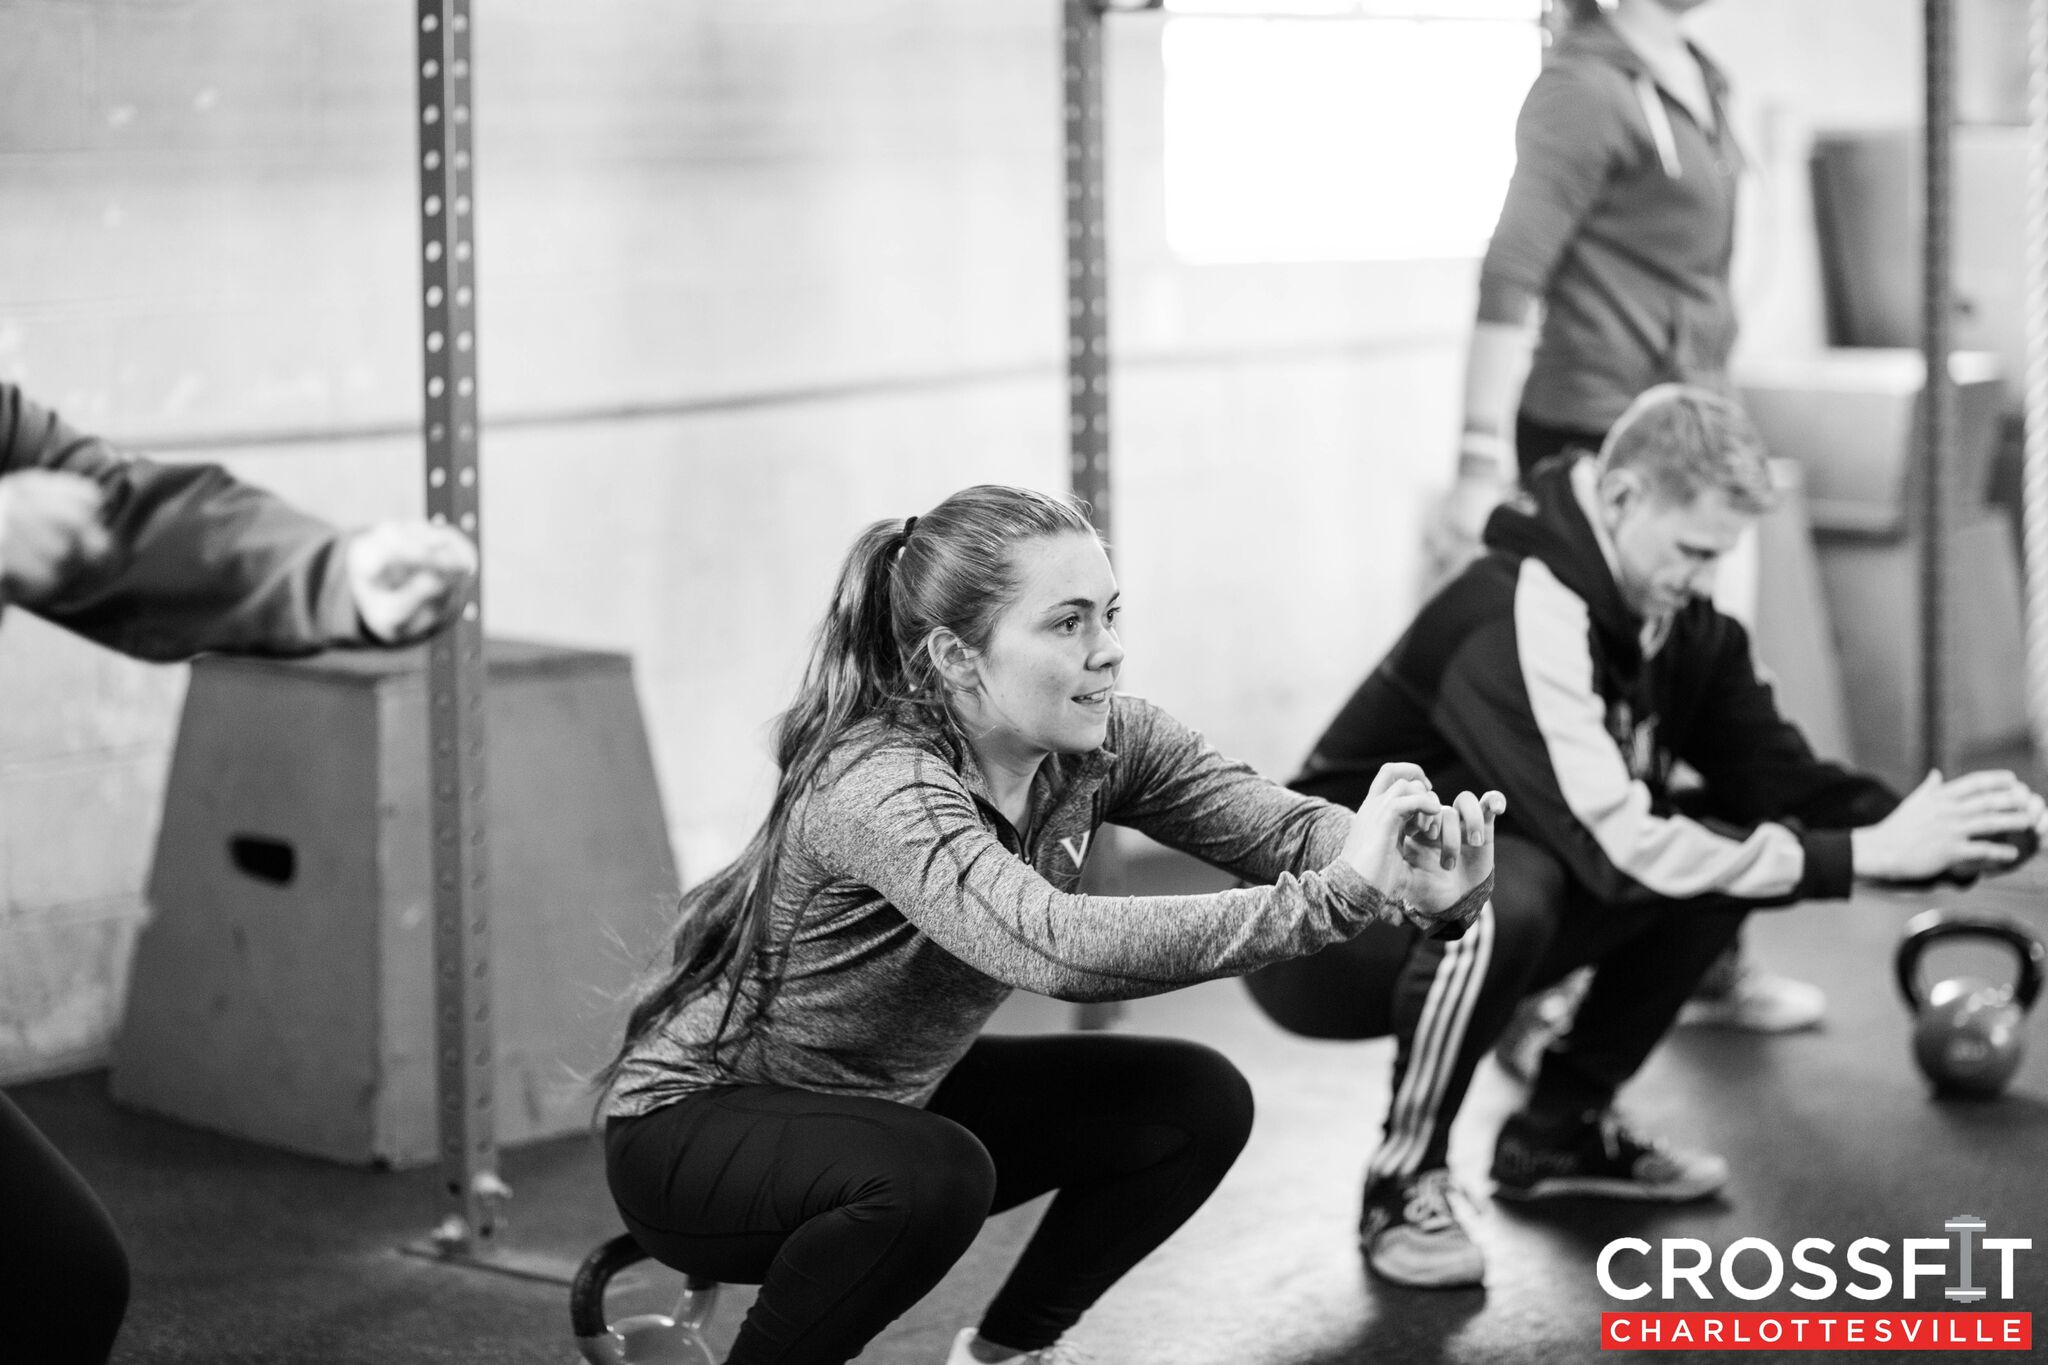 crossfit charlottesville_0658_preview.jpeg